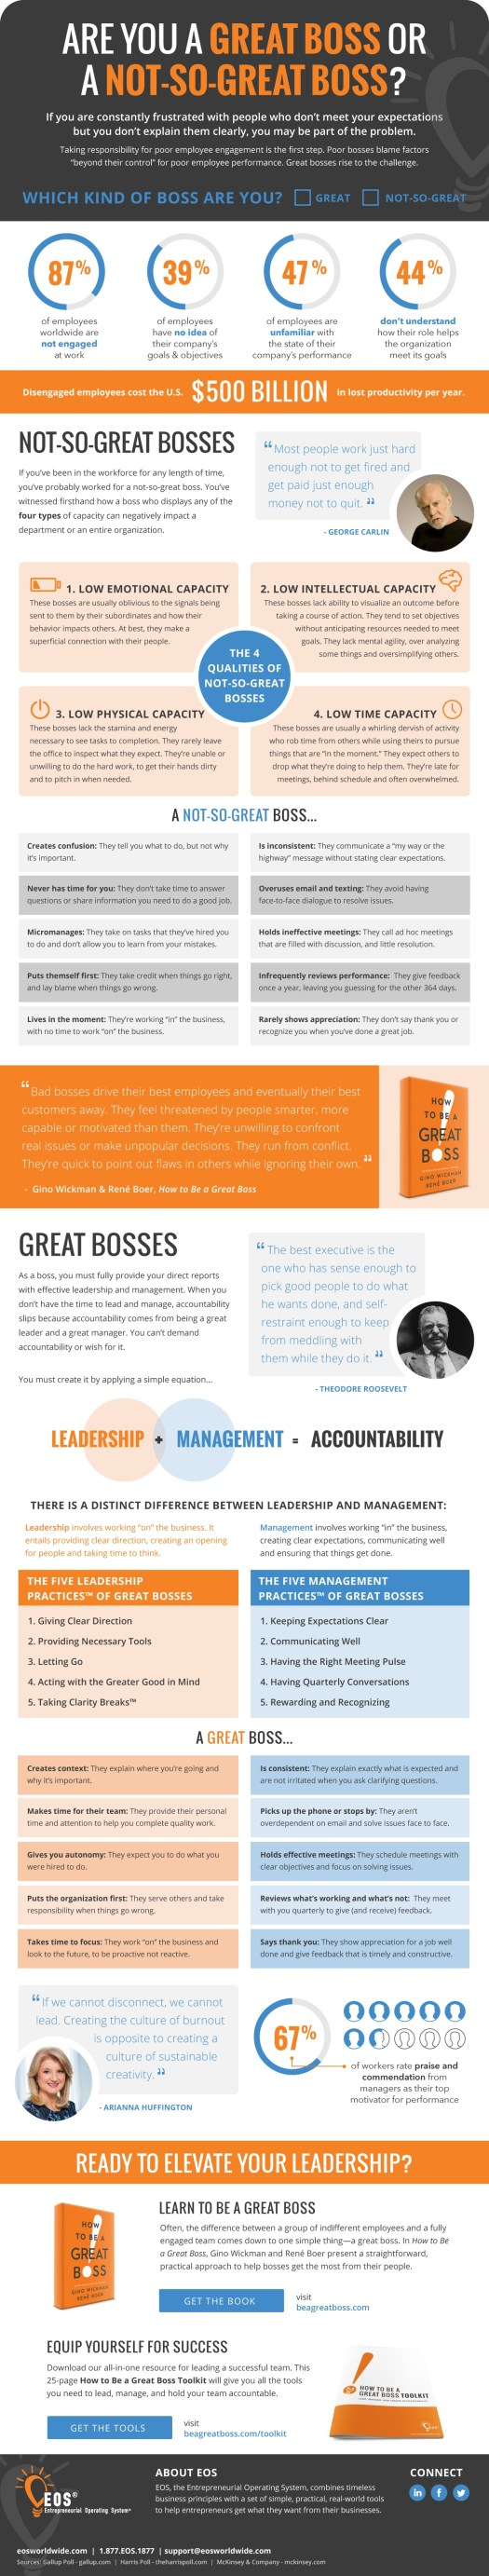 How to Be a Great Boss Infographic